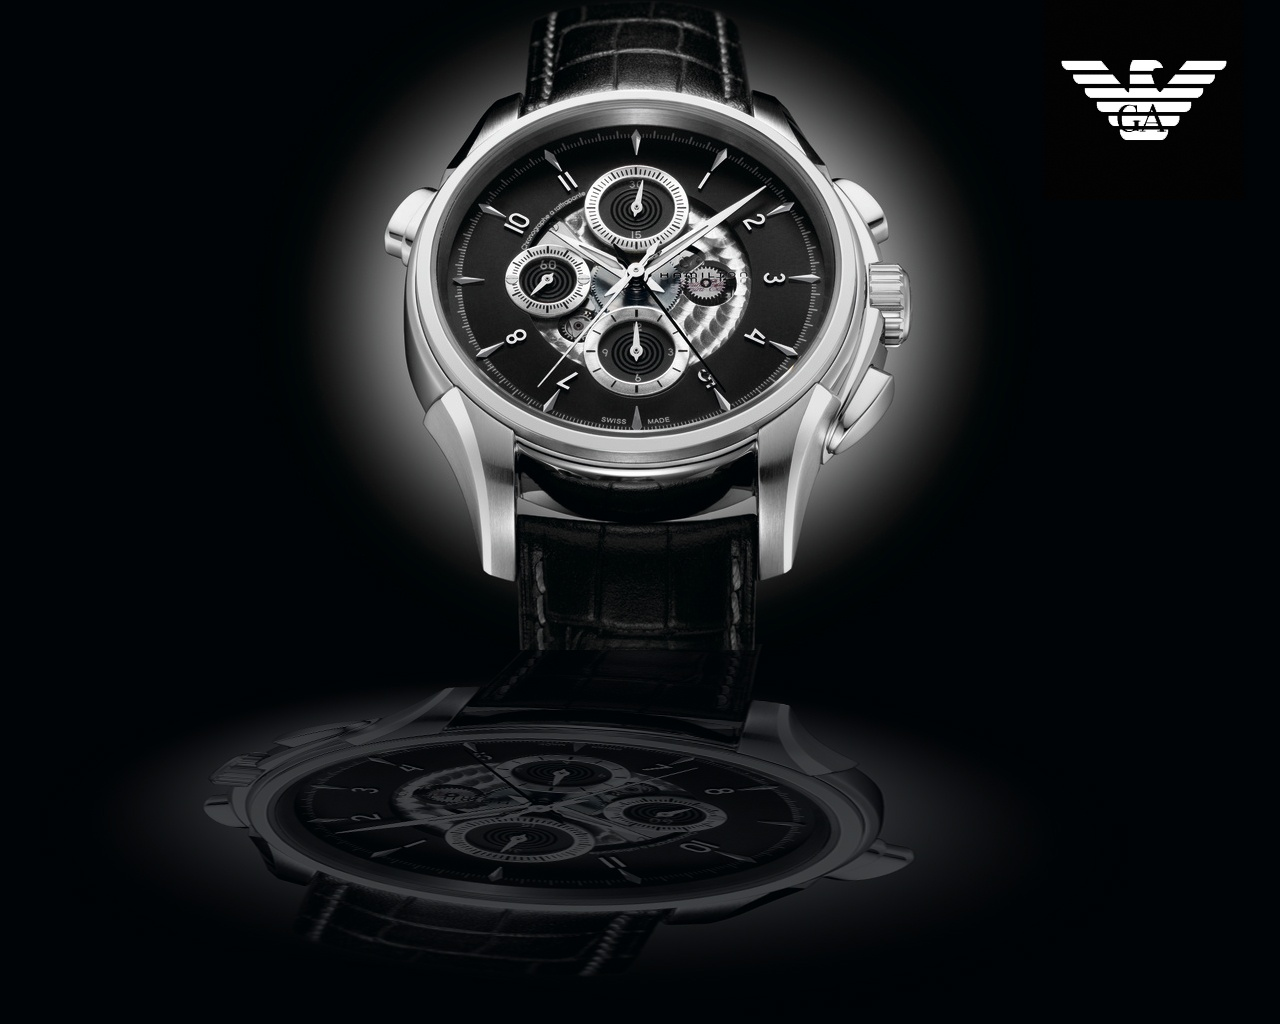 armani_watch_technology_hd-wallpaper-268629